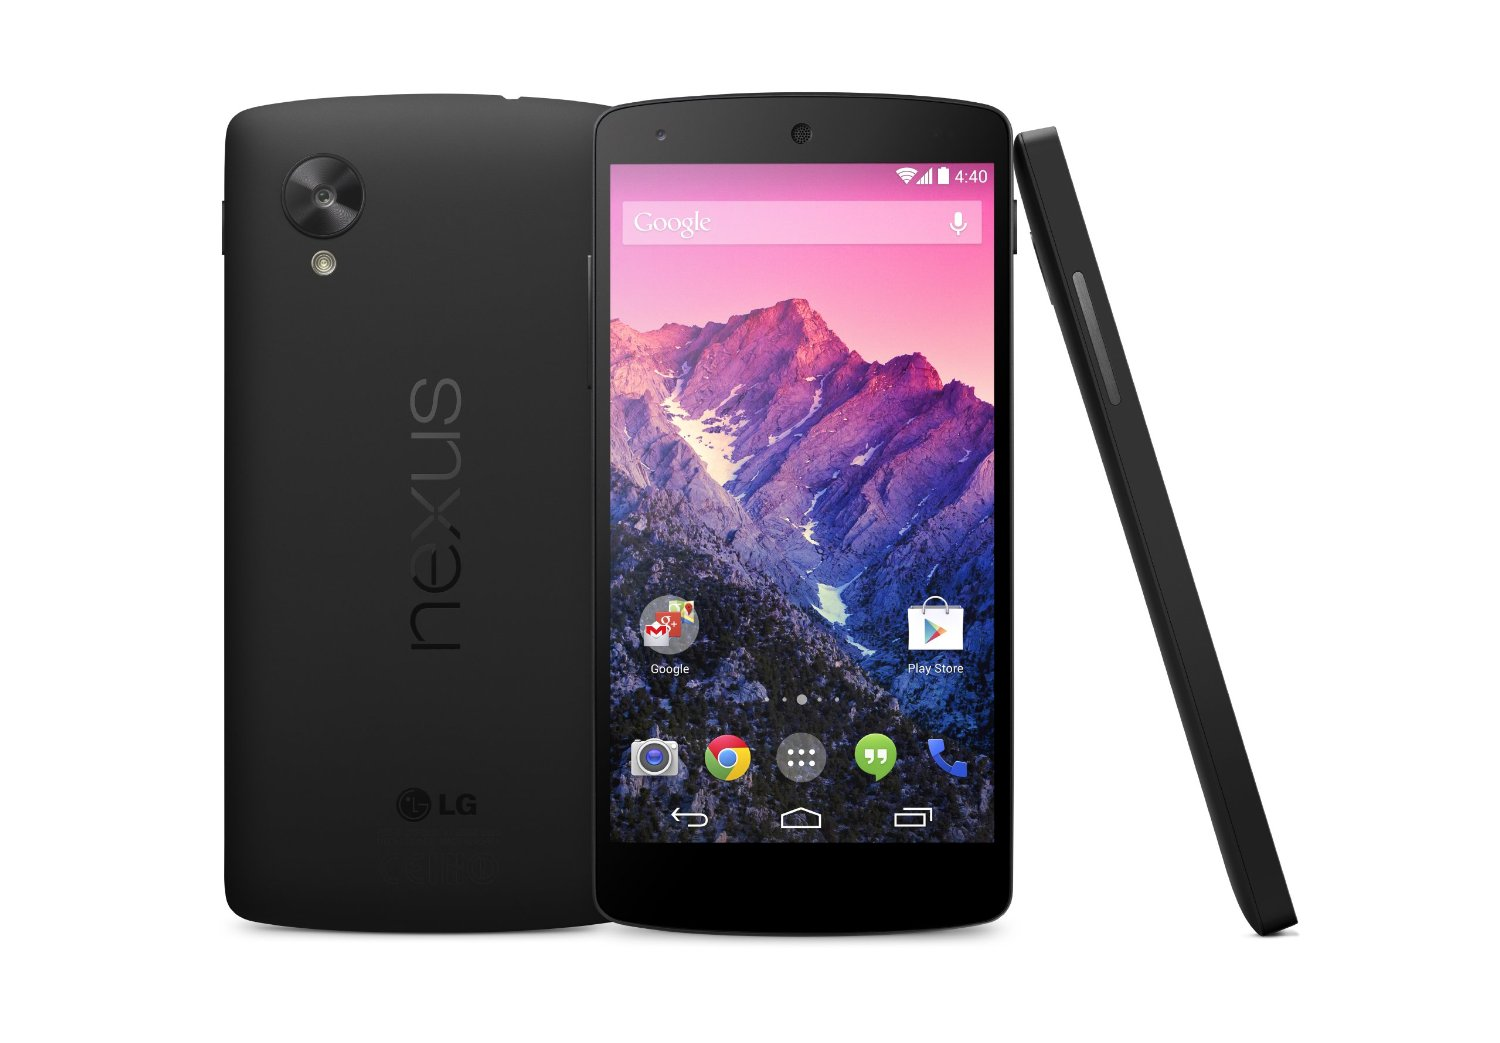 lg nexus 5 4g lte 16gb 8mp android phone hd display t mobile mint condition used